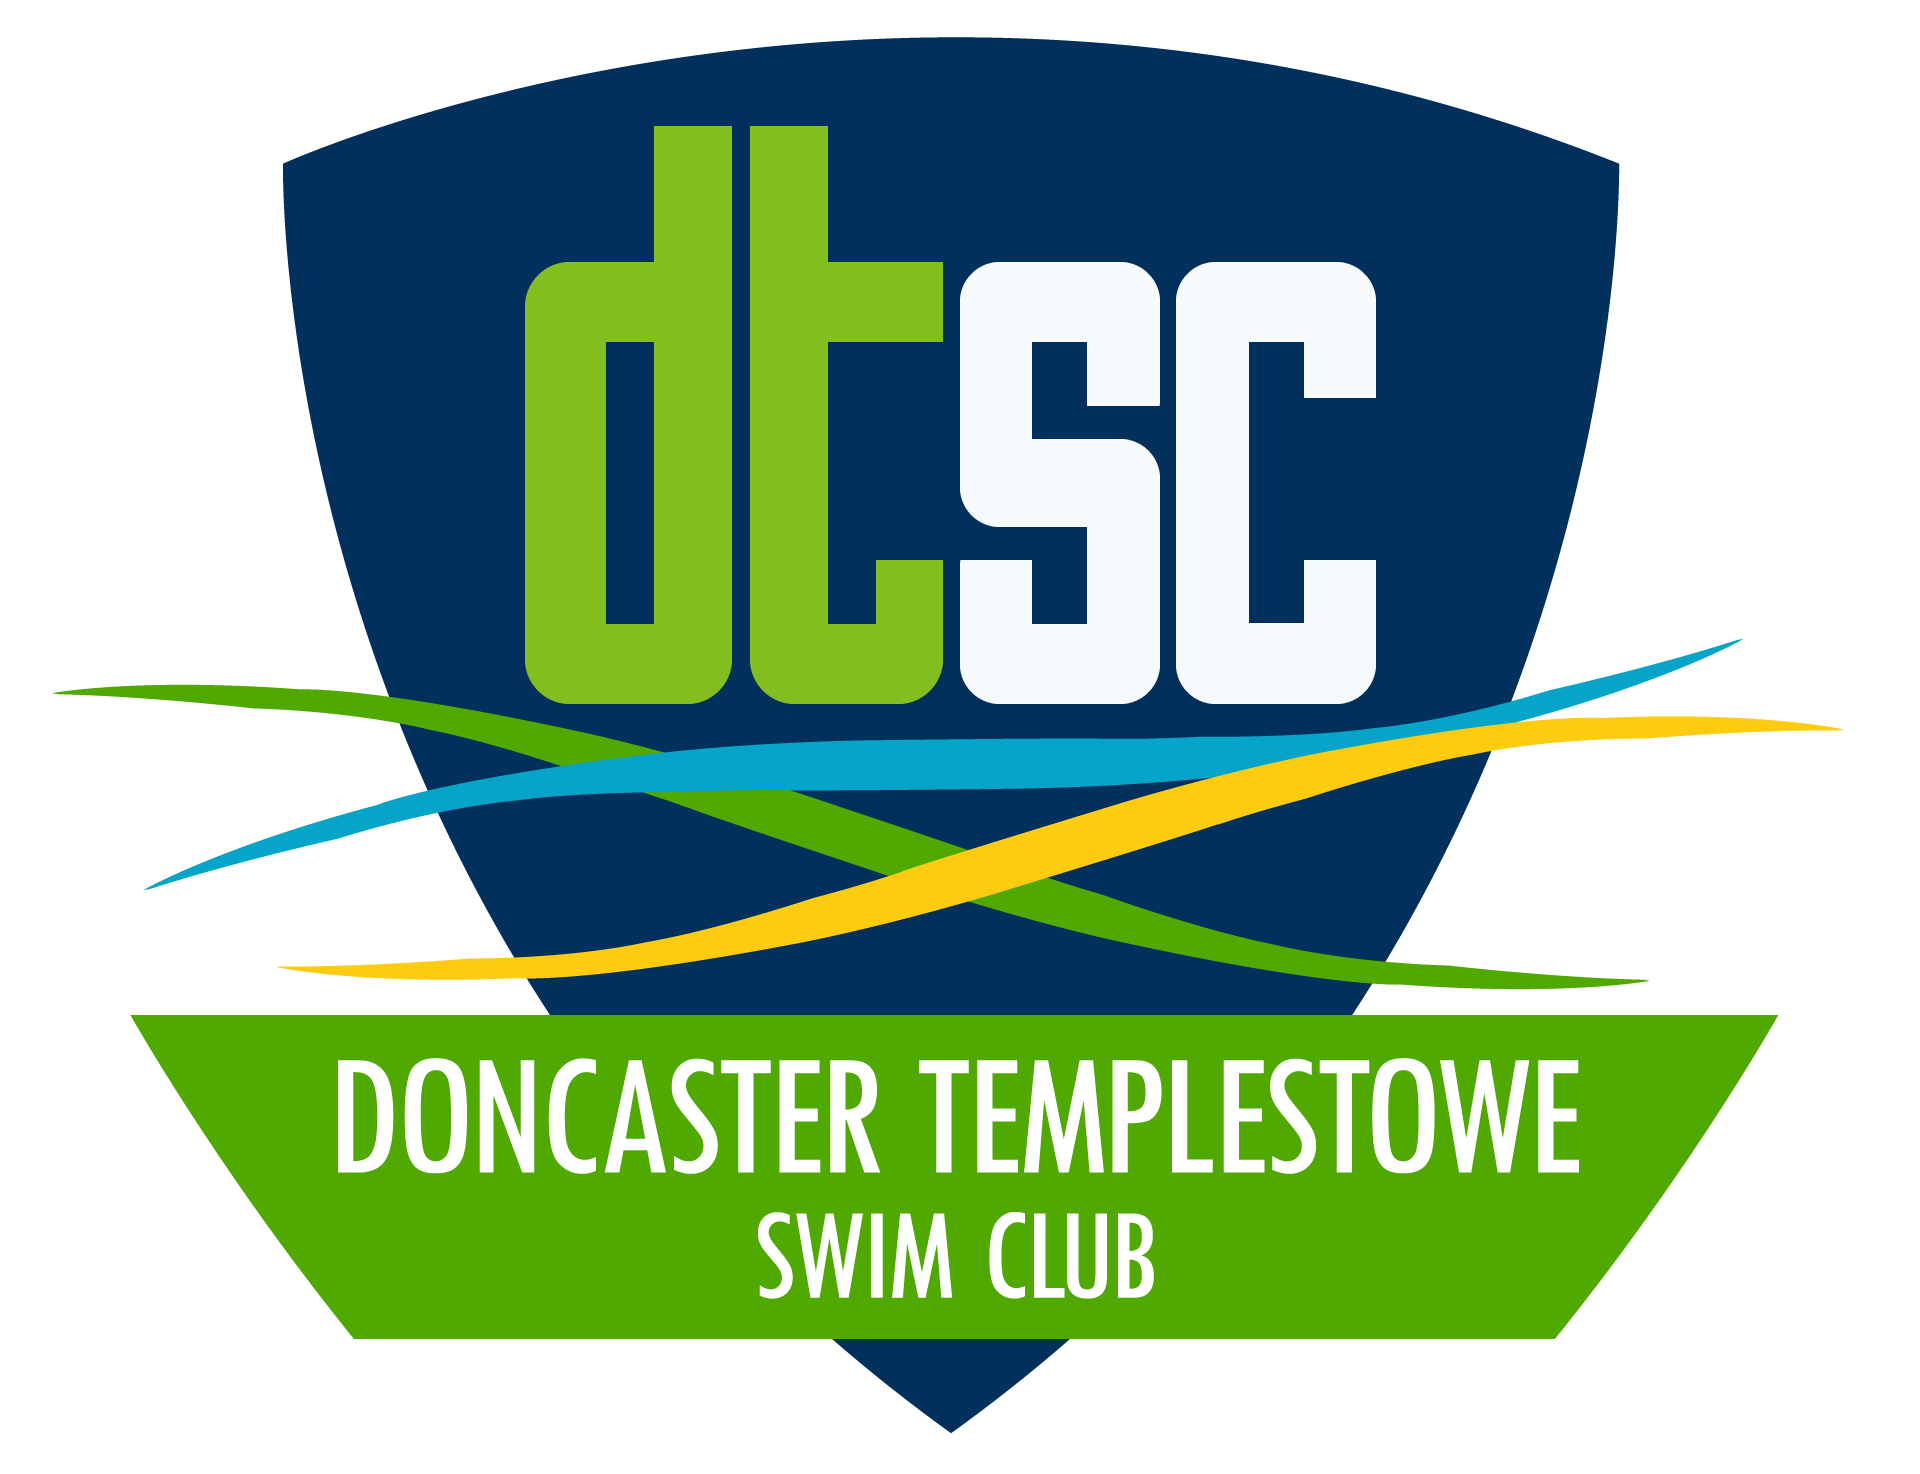 Doncaster Templestowe Swimming Club